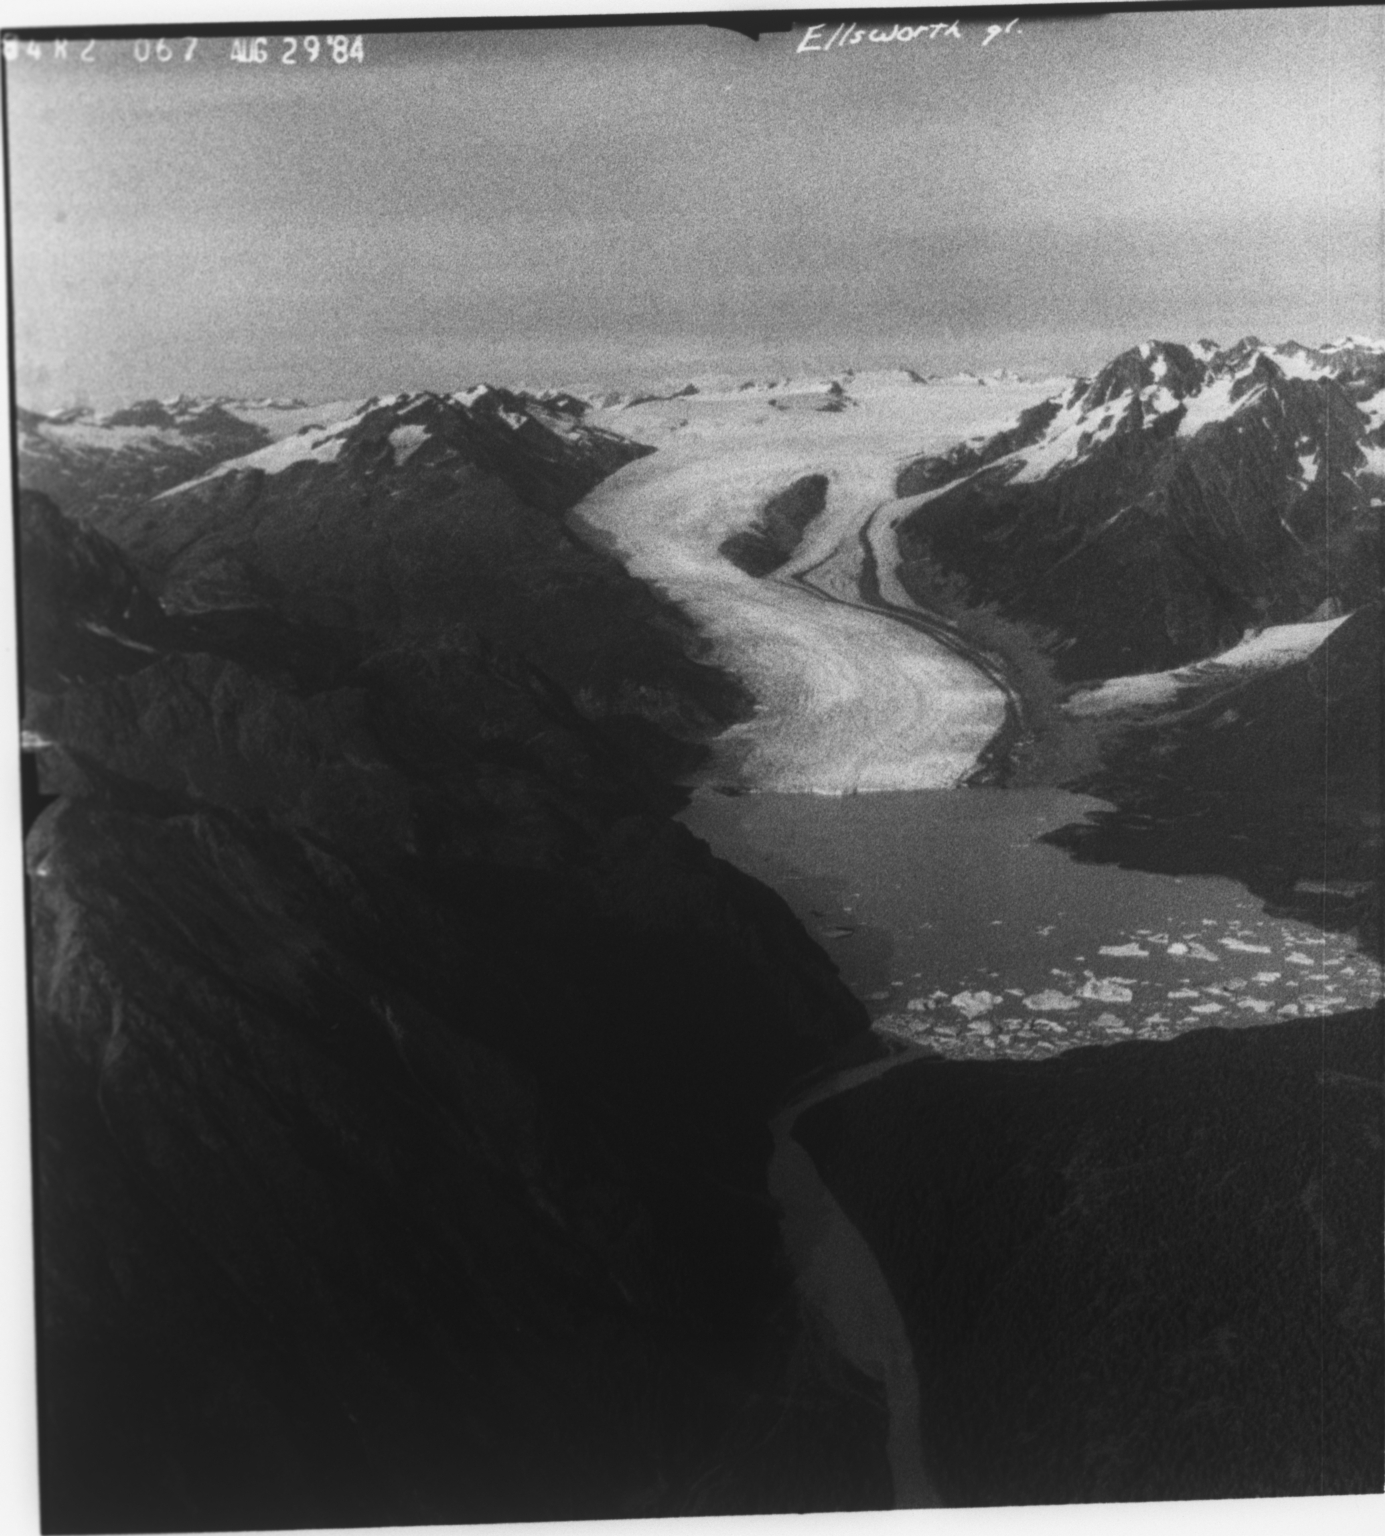 Ellsworth Glacier, Alaska, United States